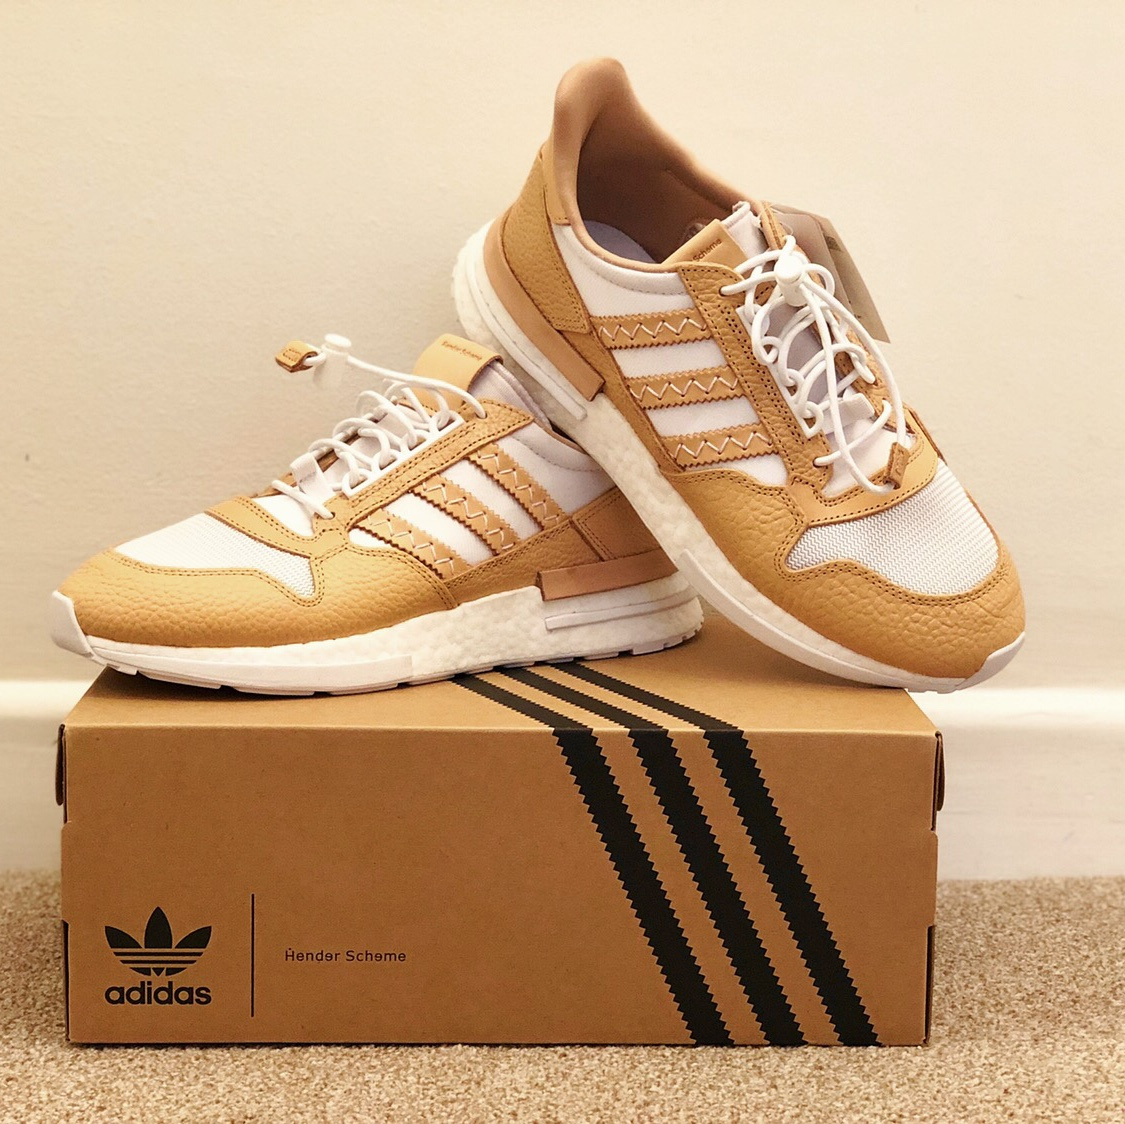 new arrival 5c15e 4abe7 Brand new with tags adidas Originals x Hender Scheme ...